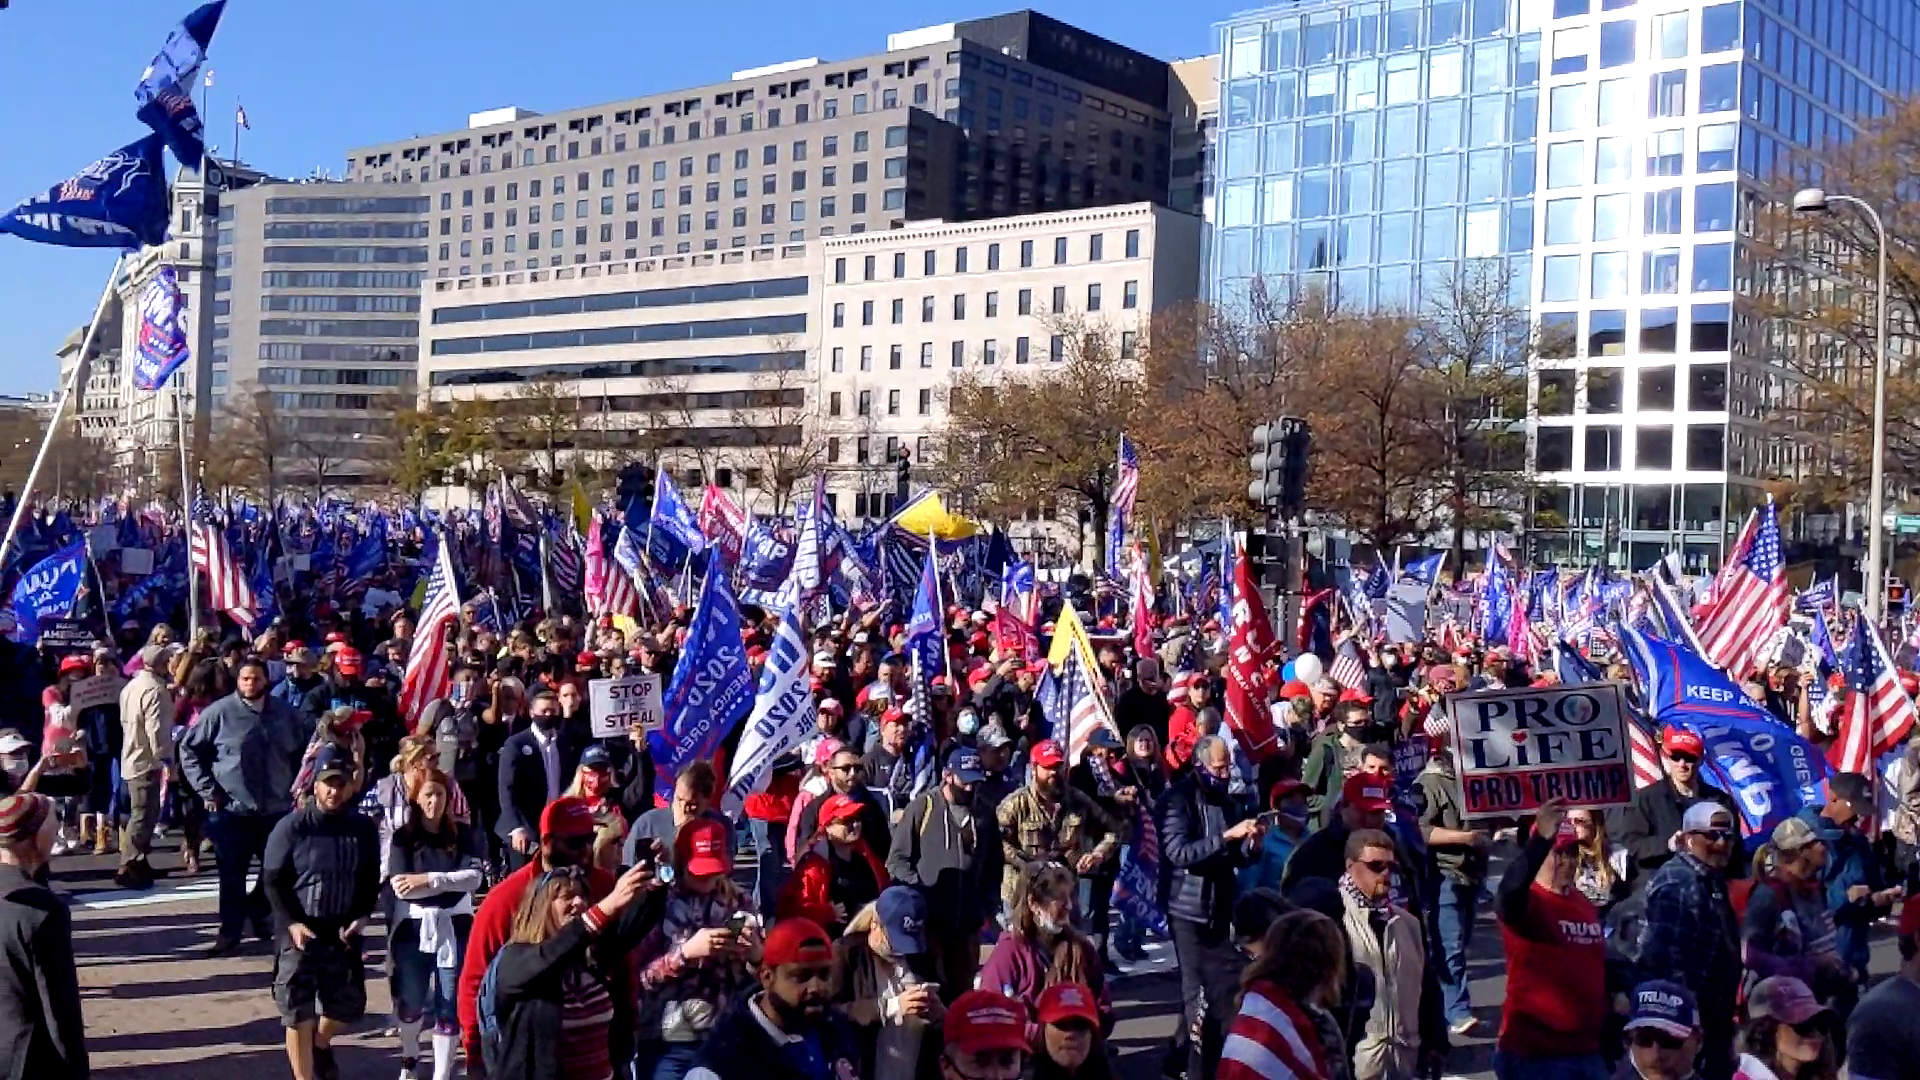 Thousands of Trump supporters carrying many Trump flags march down the streets of Washington DC